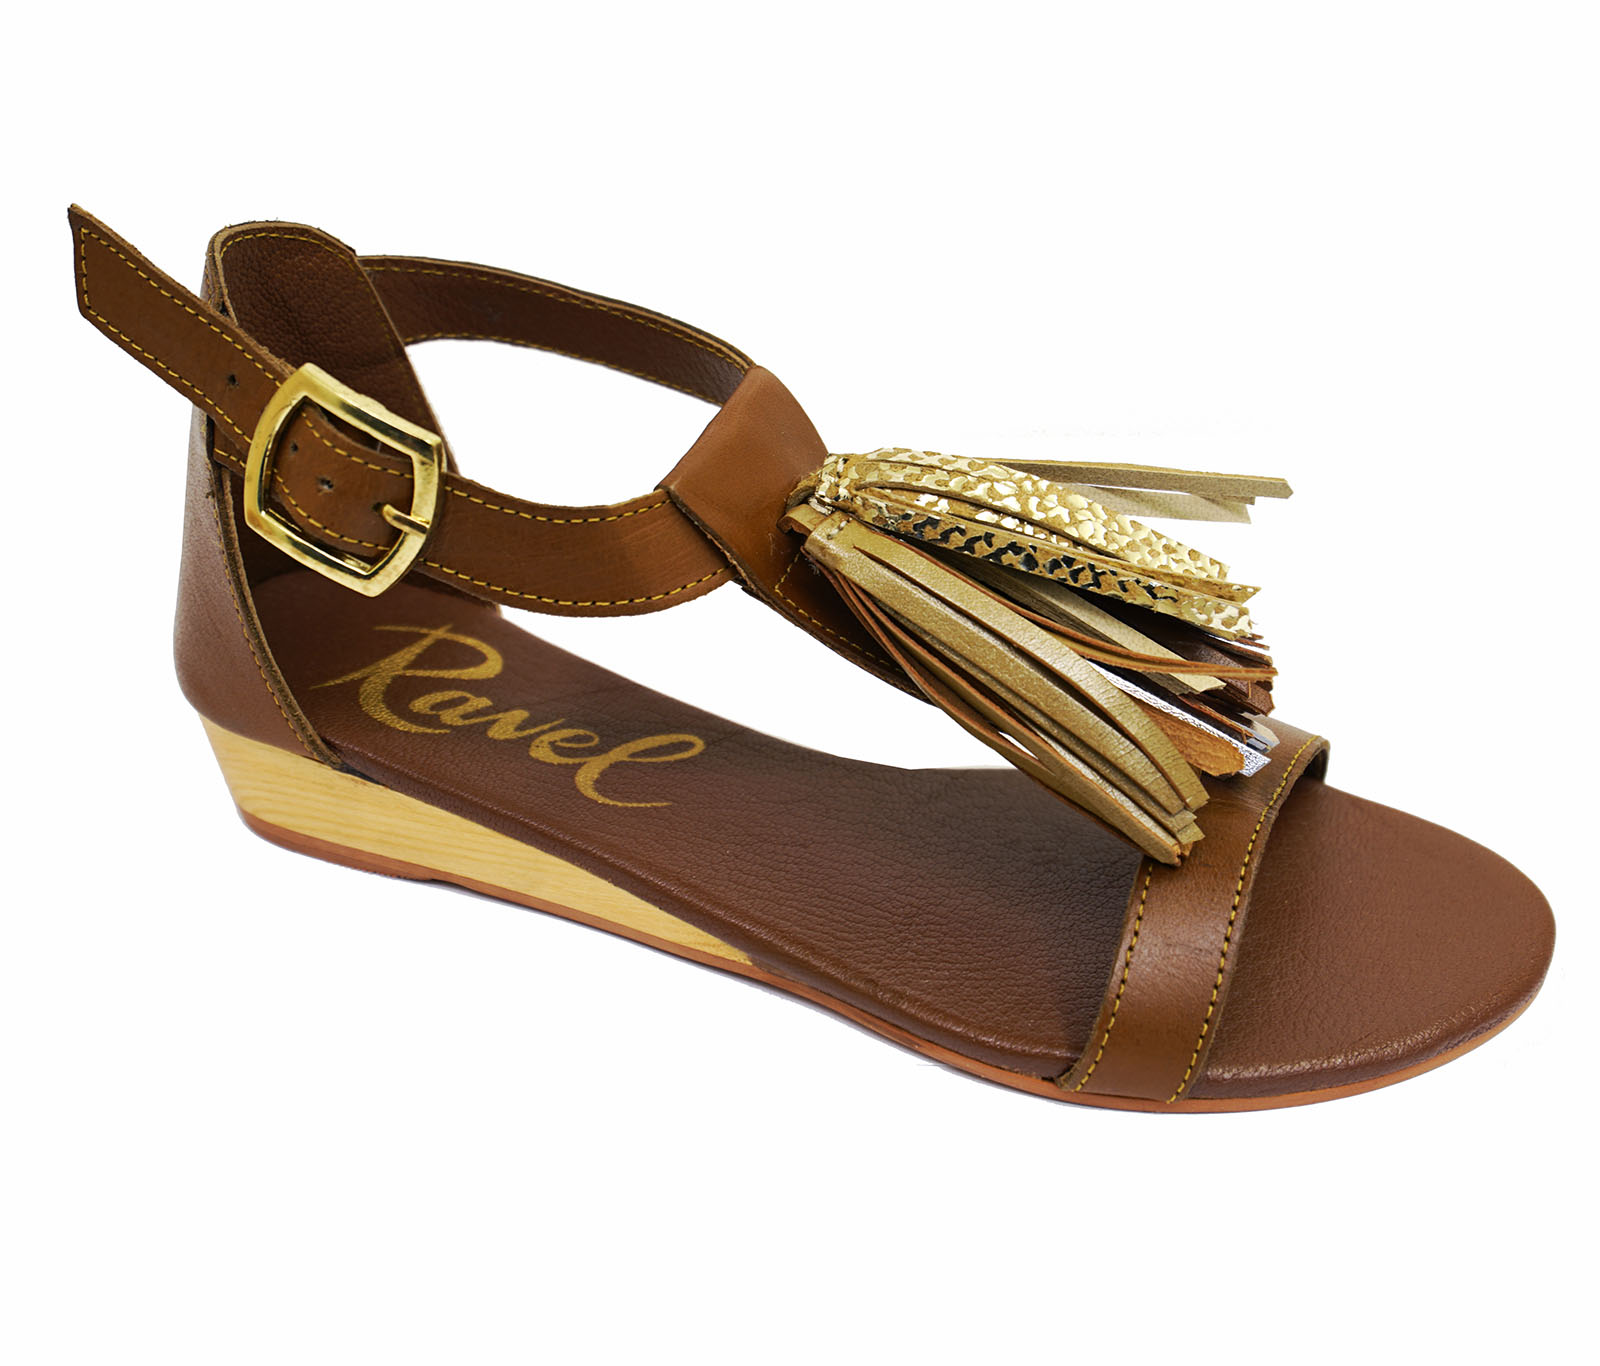 LADIES-RAVEL-ASTORIA-FLAT-LEATHER-TAN-SANDALS-SLIP-ON-T-BAR-STRAPPY-SHOES-UK-3-8 thumbnail 8